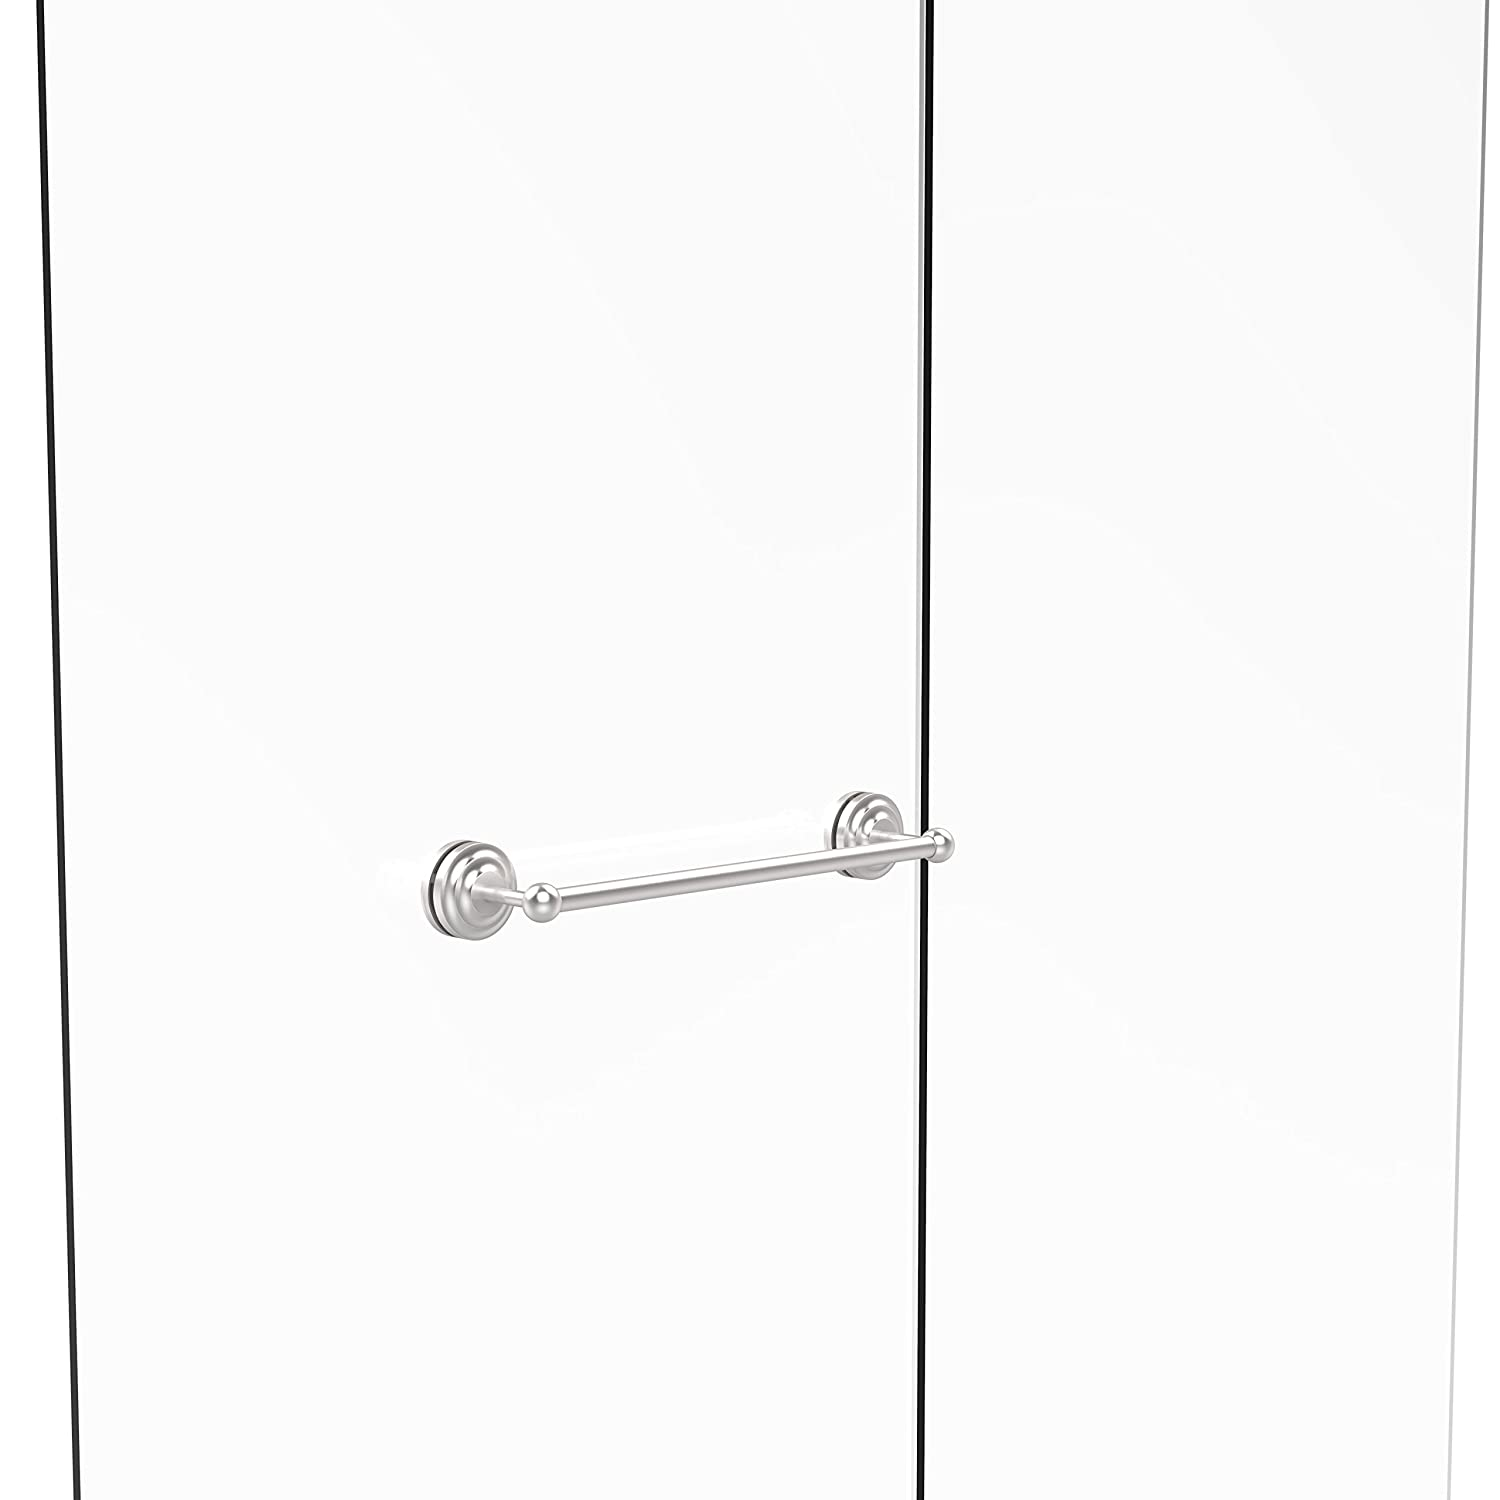 Allied Brass QN-41-SM-18-SCH Que New Collection 18 Inch Shower Door Towel Bar Satin Chrome